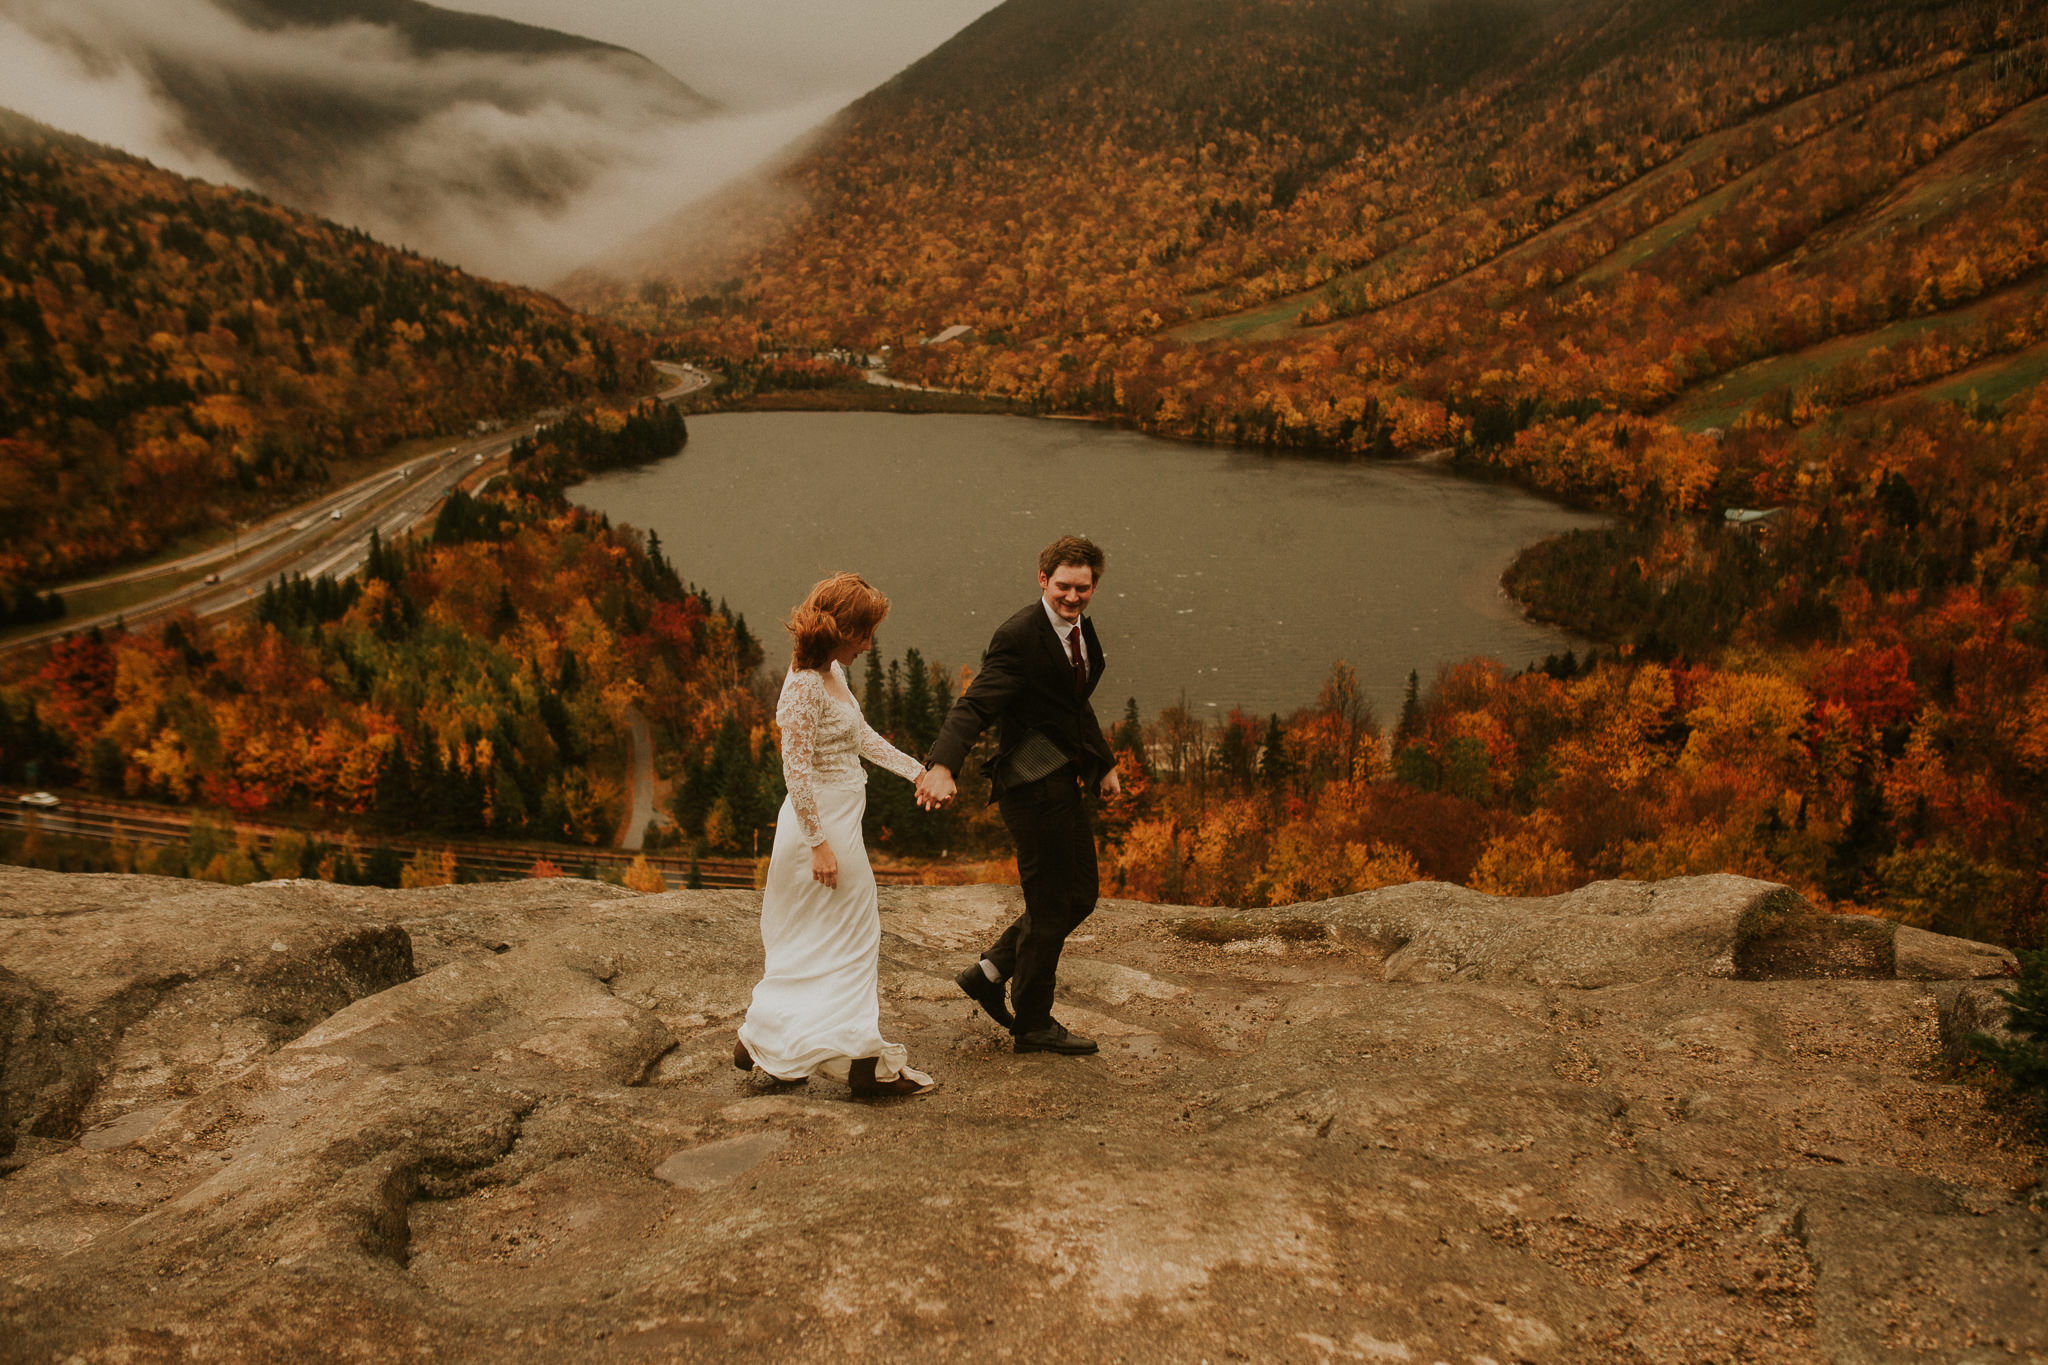 Fall colors in New england! New hampshire elopement in Autumn